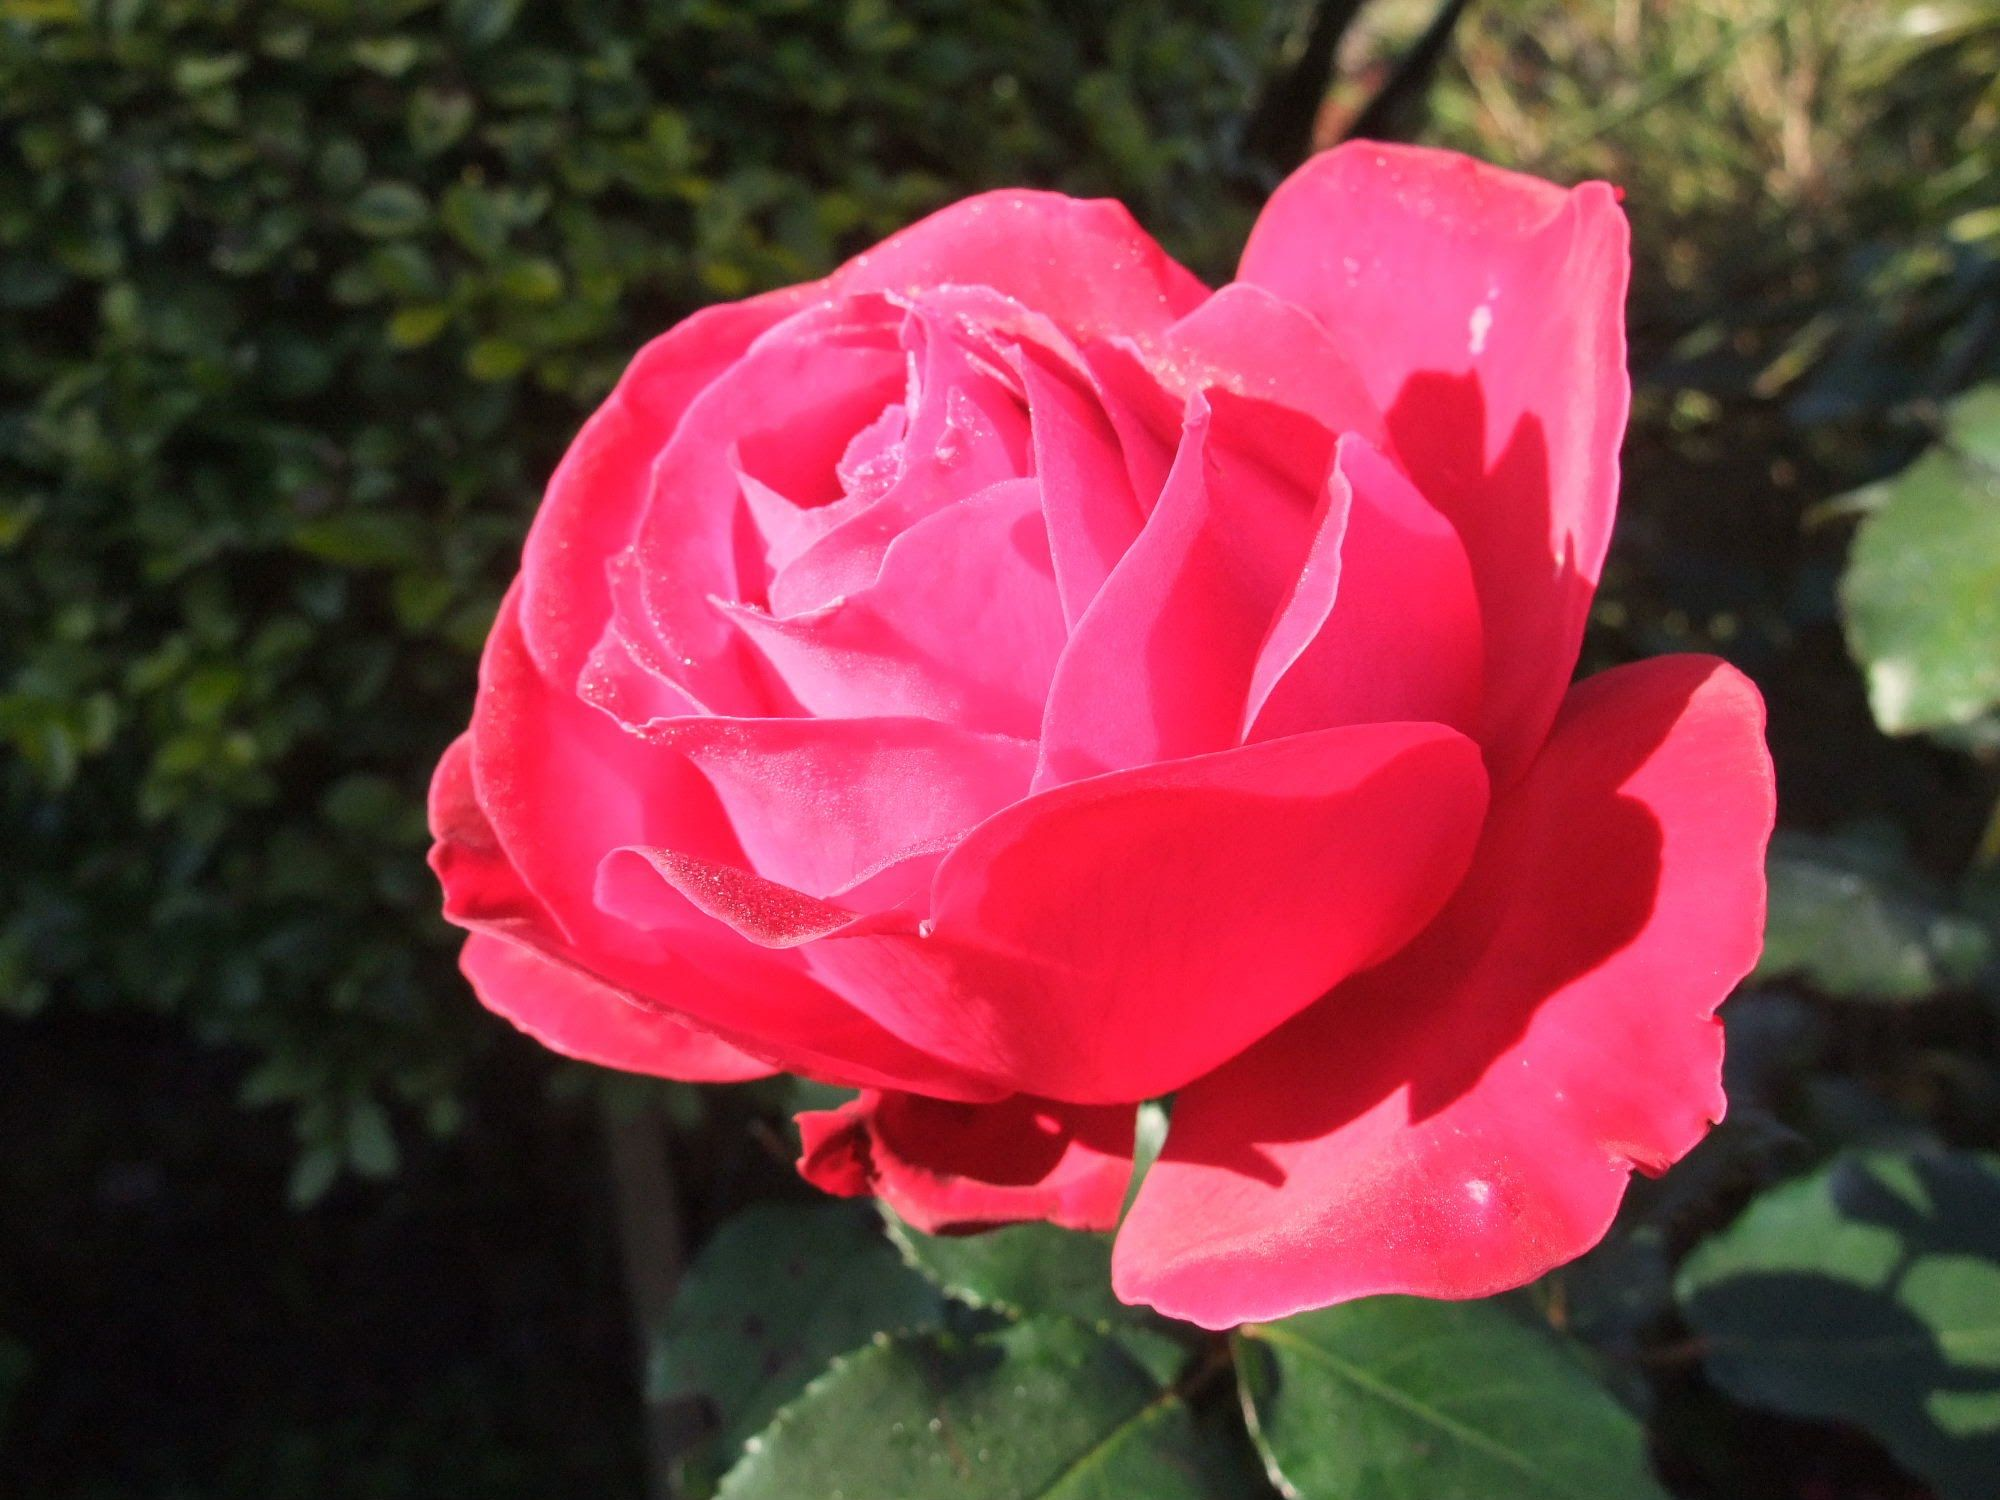 How to prune a rose bush to encourage more blooms gardening